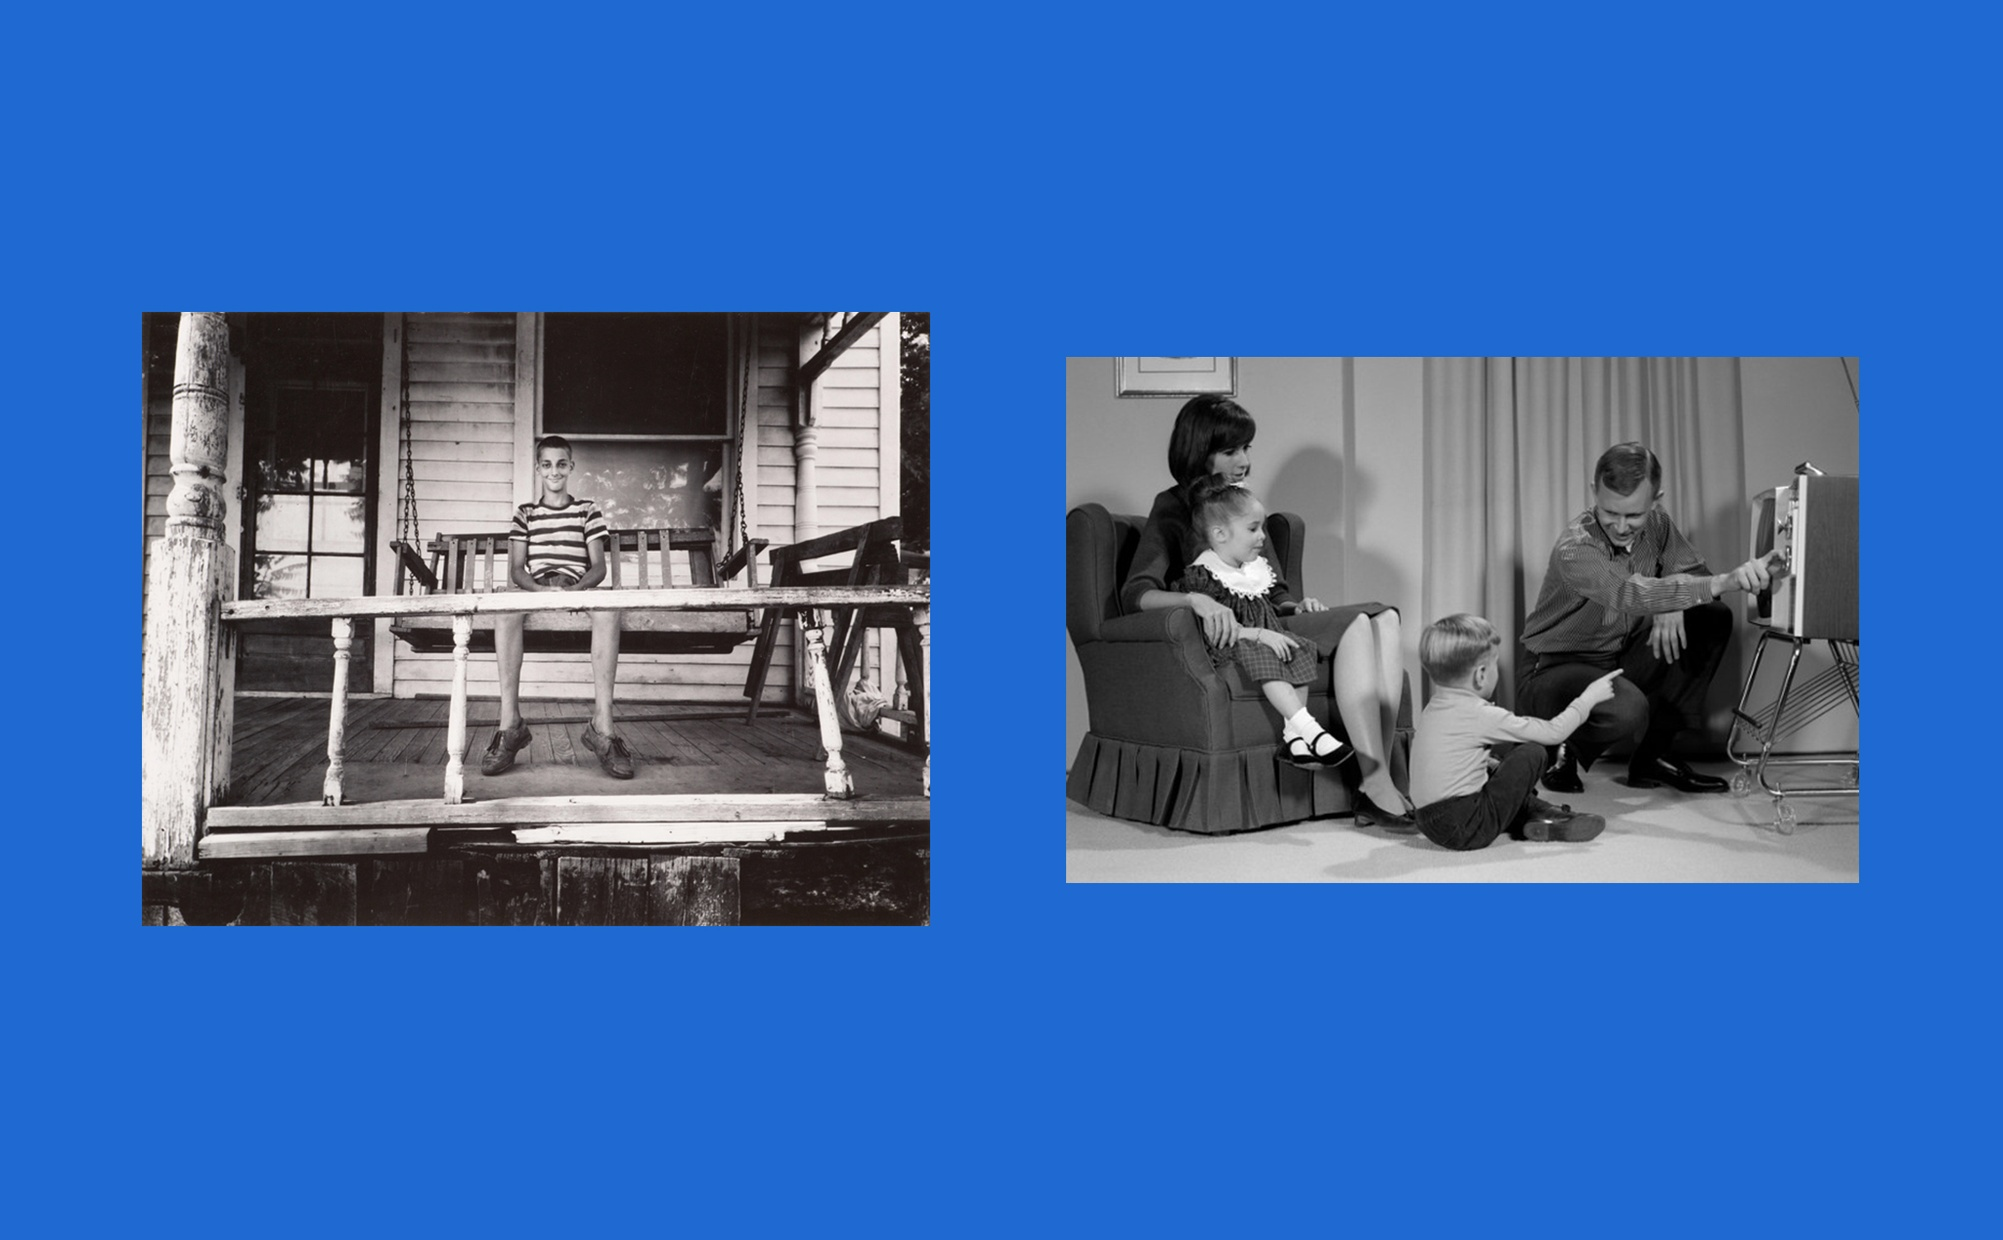 Two images side-by-side, one image is a black and white photograph of a light-skinned teenage boy smiling and sitting on a house porch that has a broken rail and chipping paint, and the other image is a black and white photograph of a light-skinned family in their living room turning on a T.V.